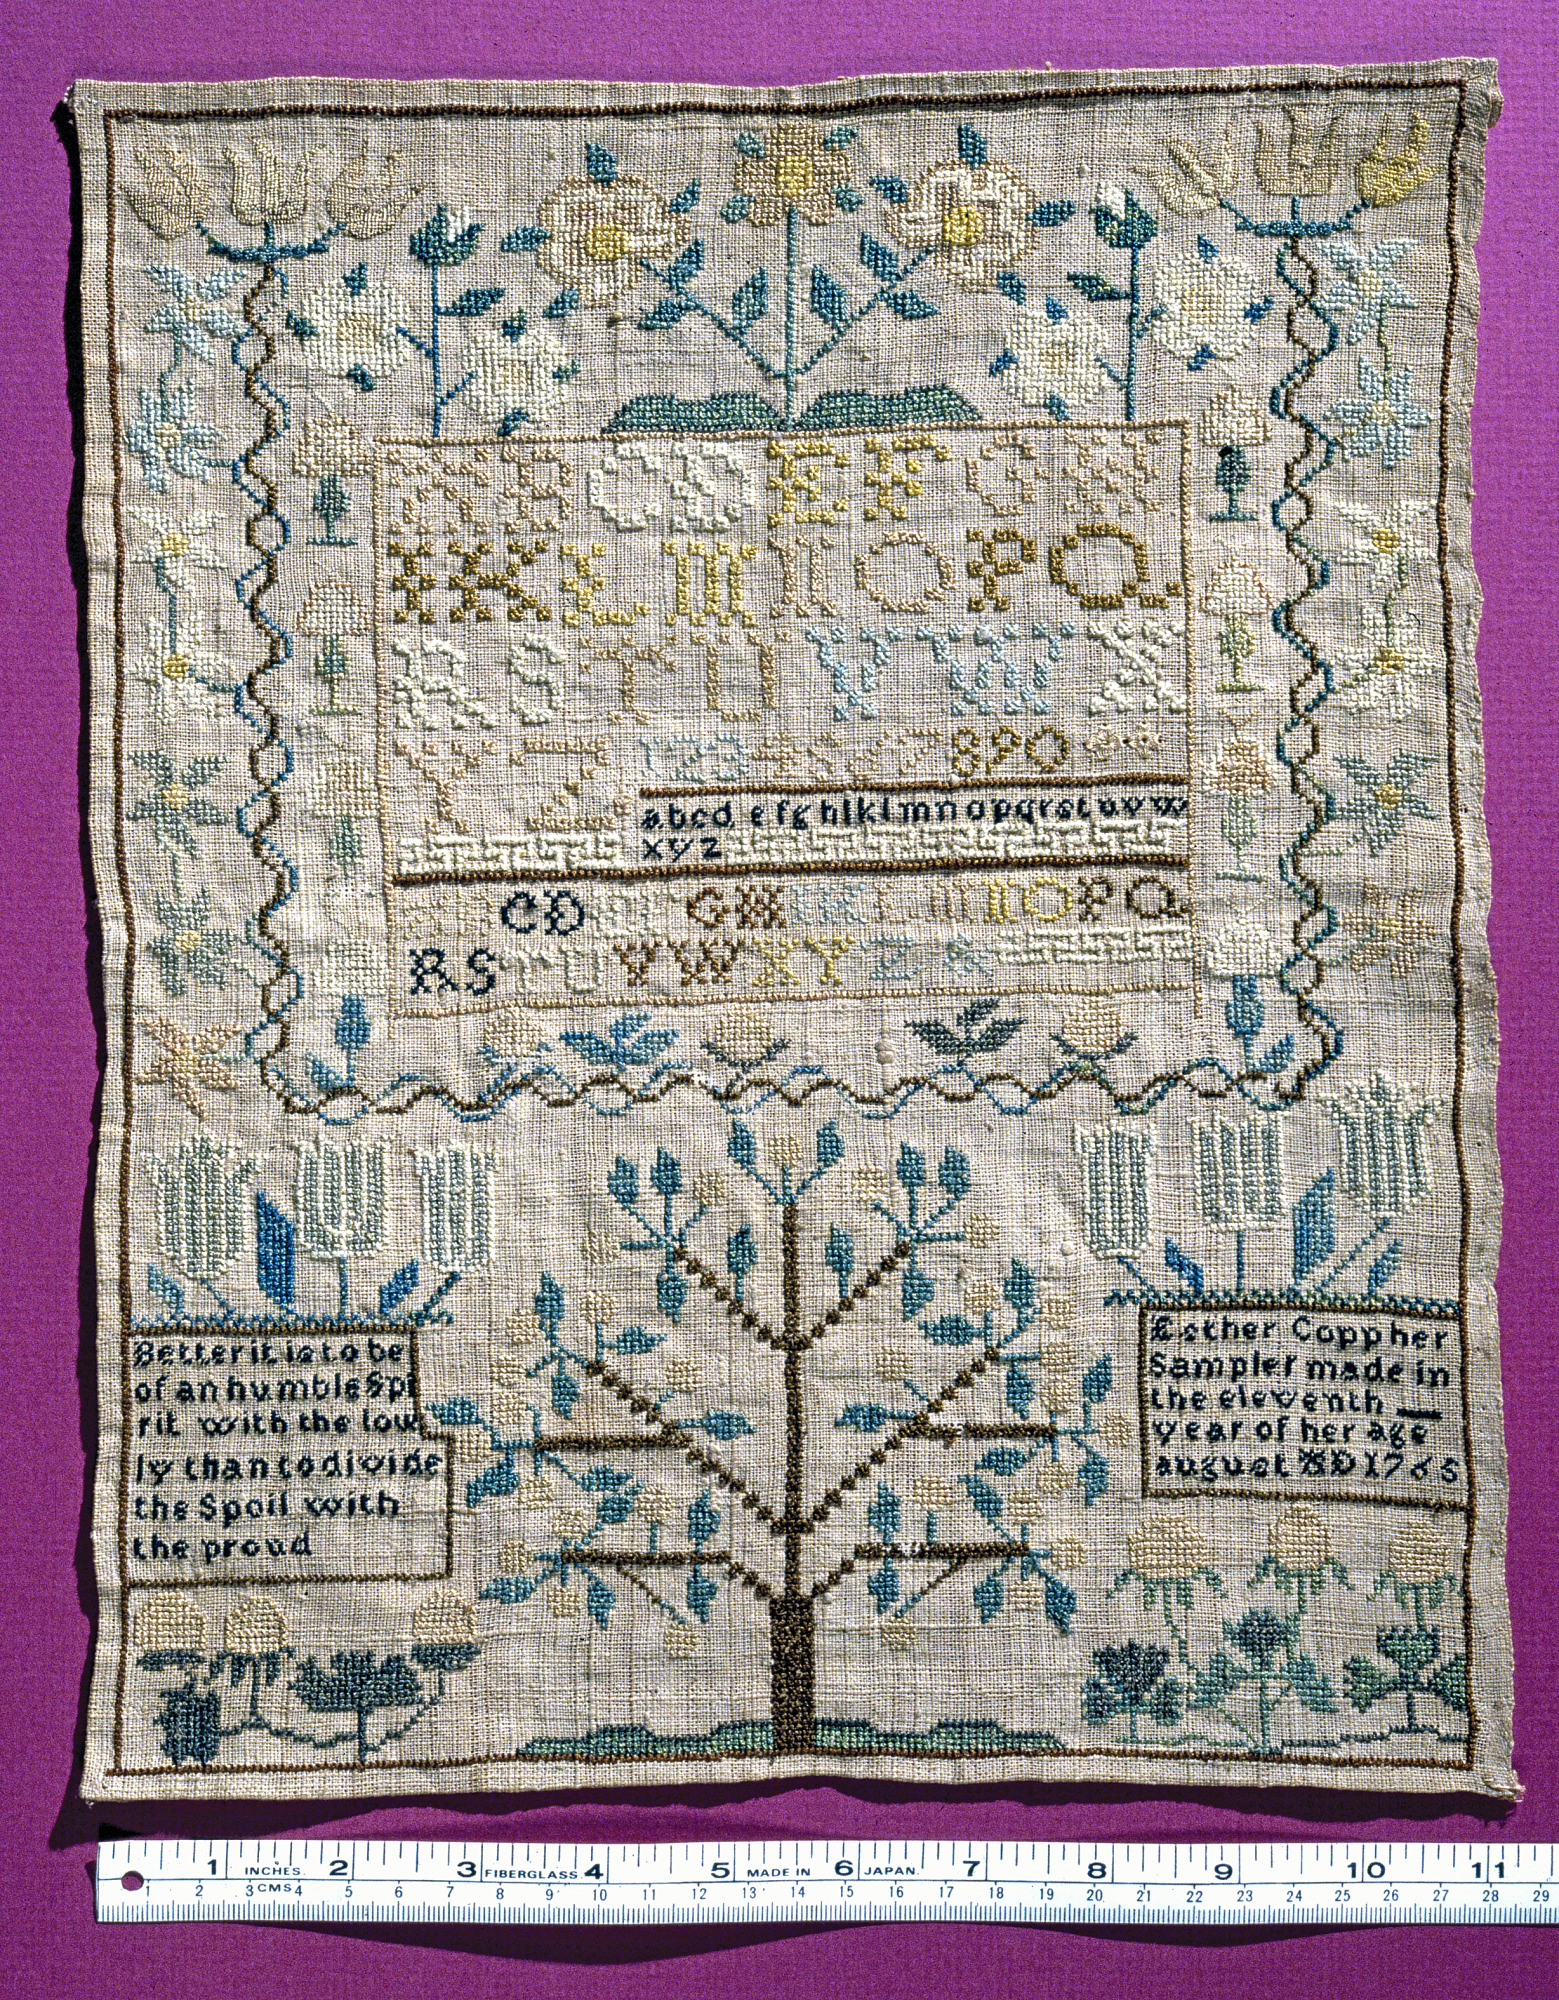 Esther Copp's sampler, 1765